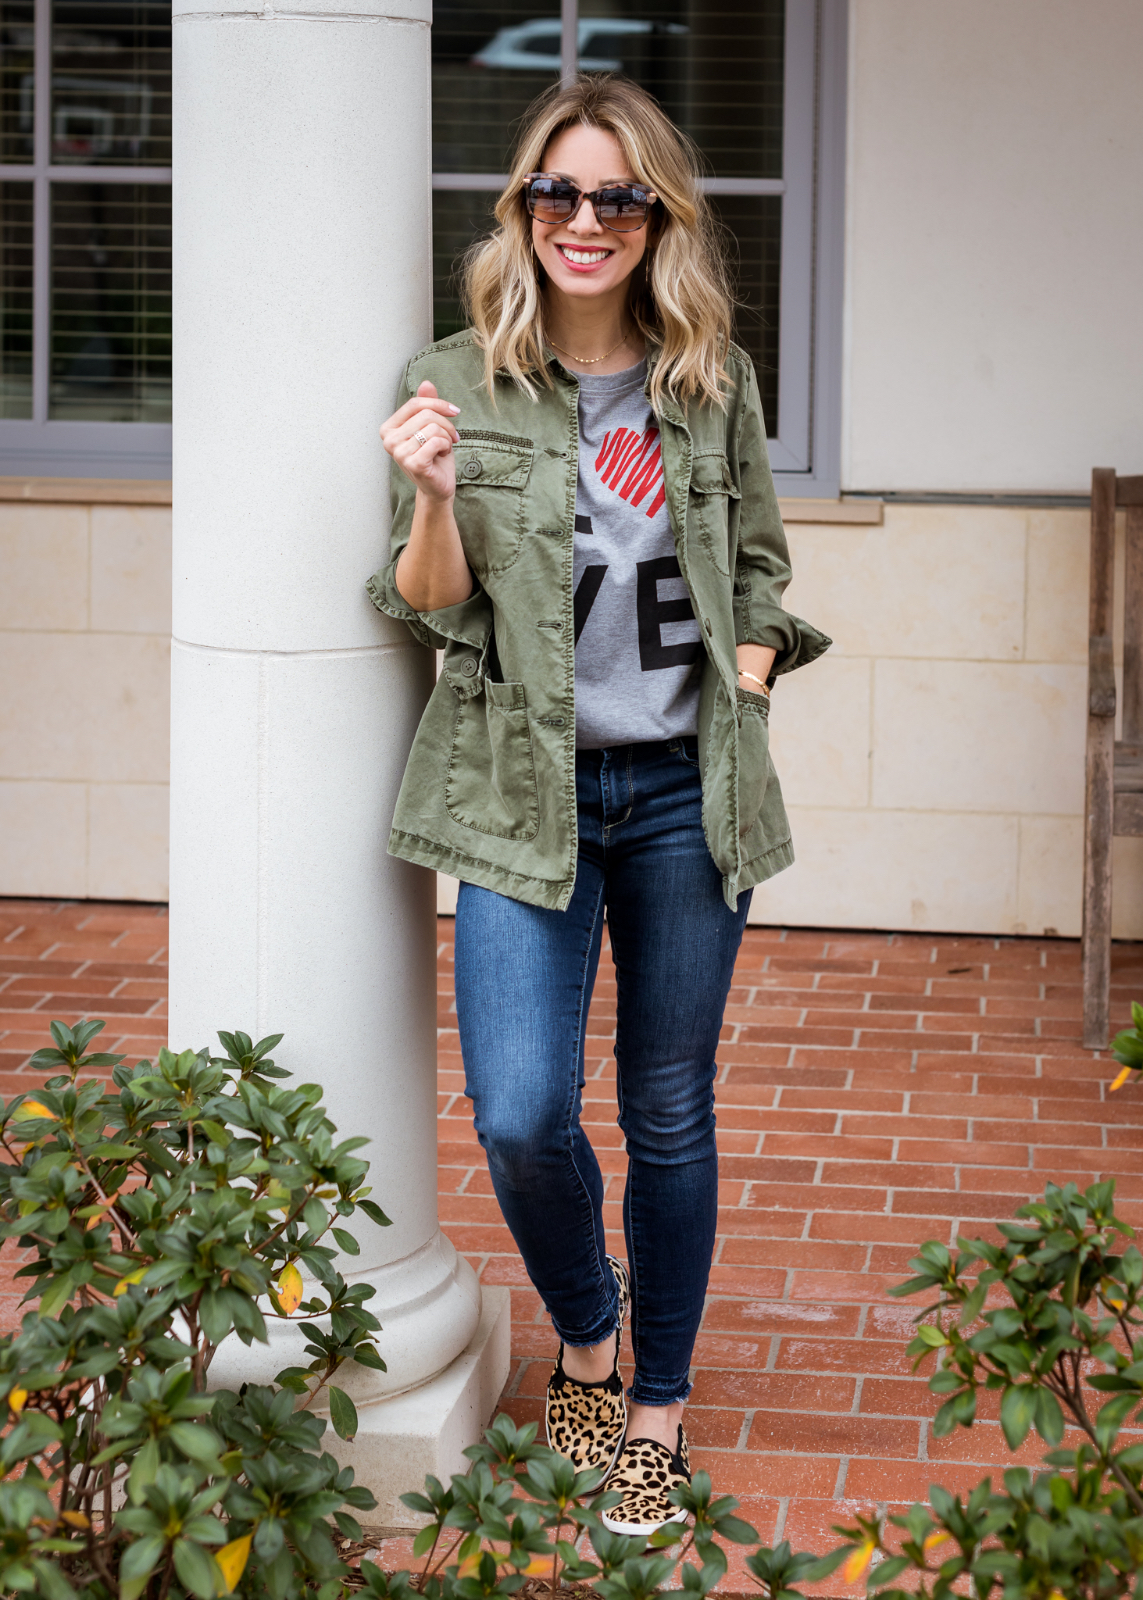 Cute winter outfit - LOVE tee military jacket and skinny jeans